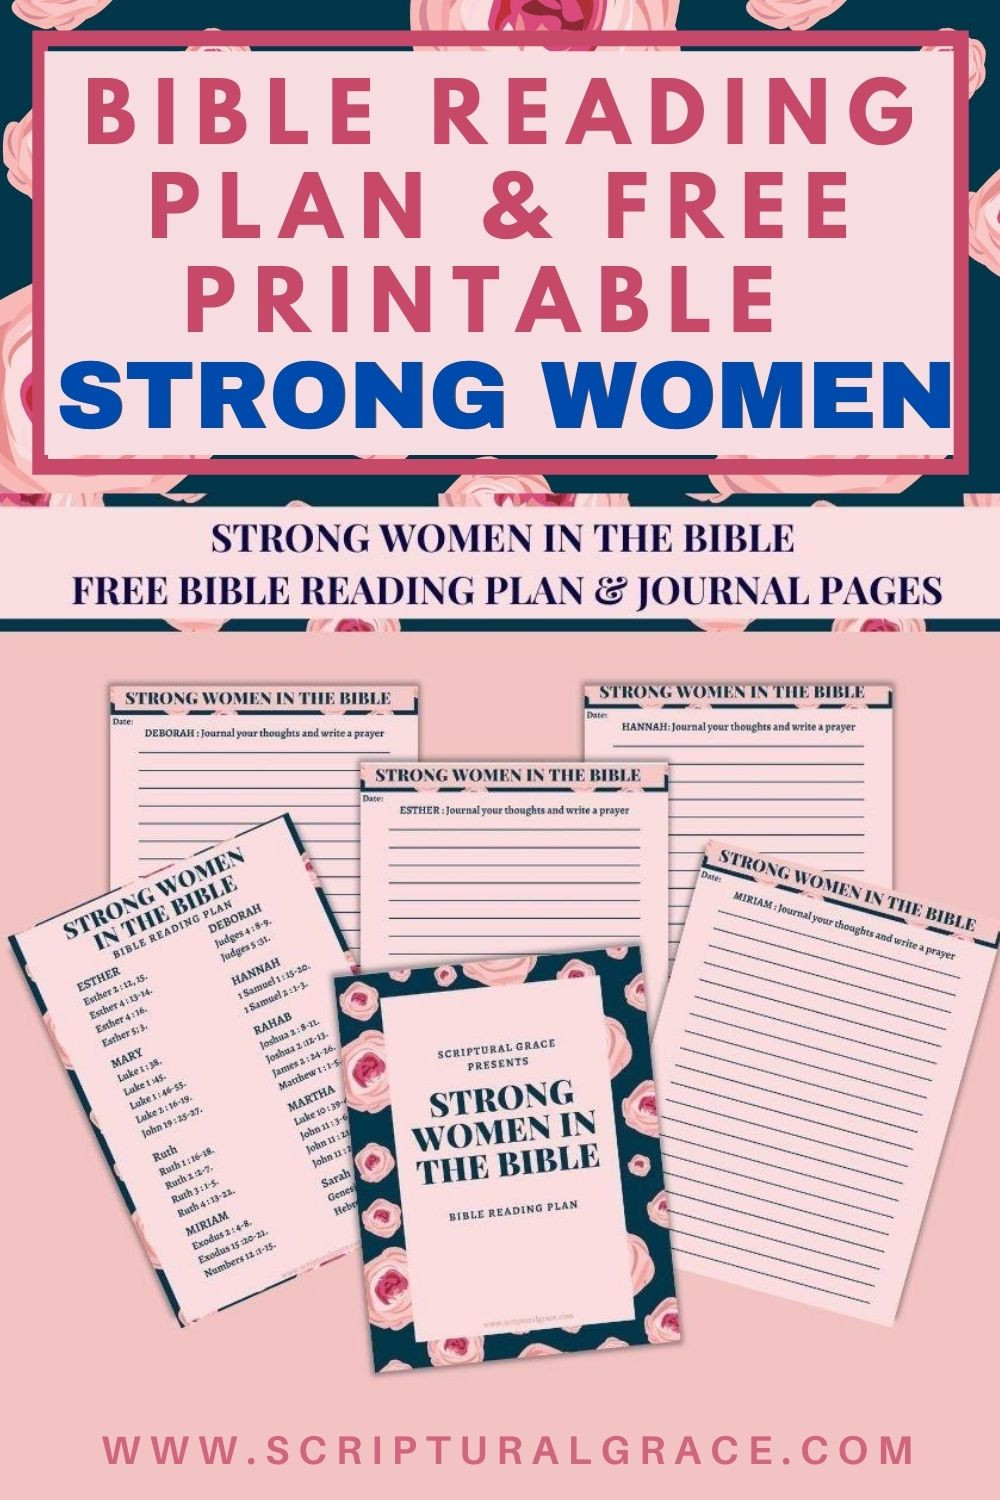 bIBLE READING PLAN STRONG WOMEN AND FREE PRINTABLE